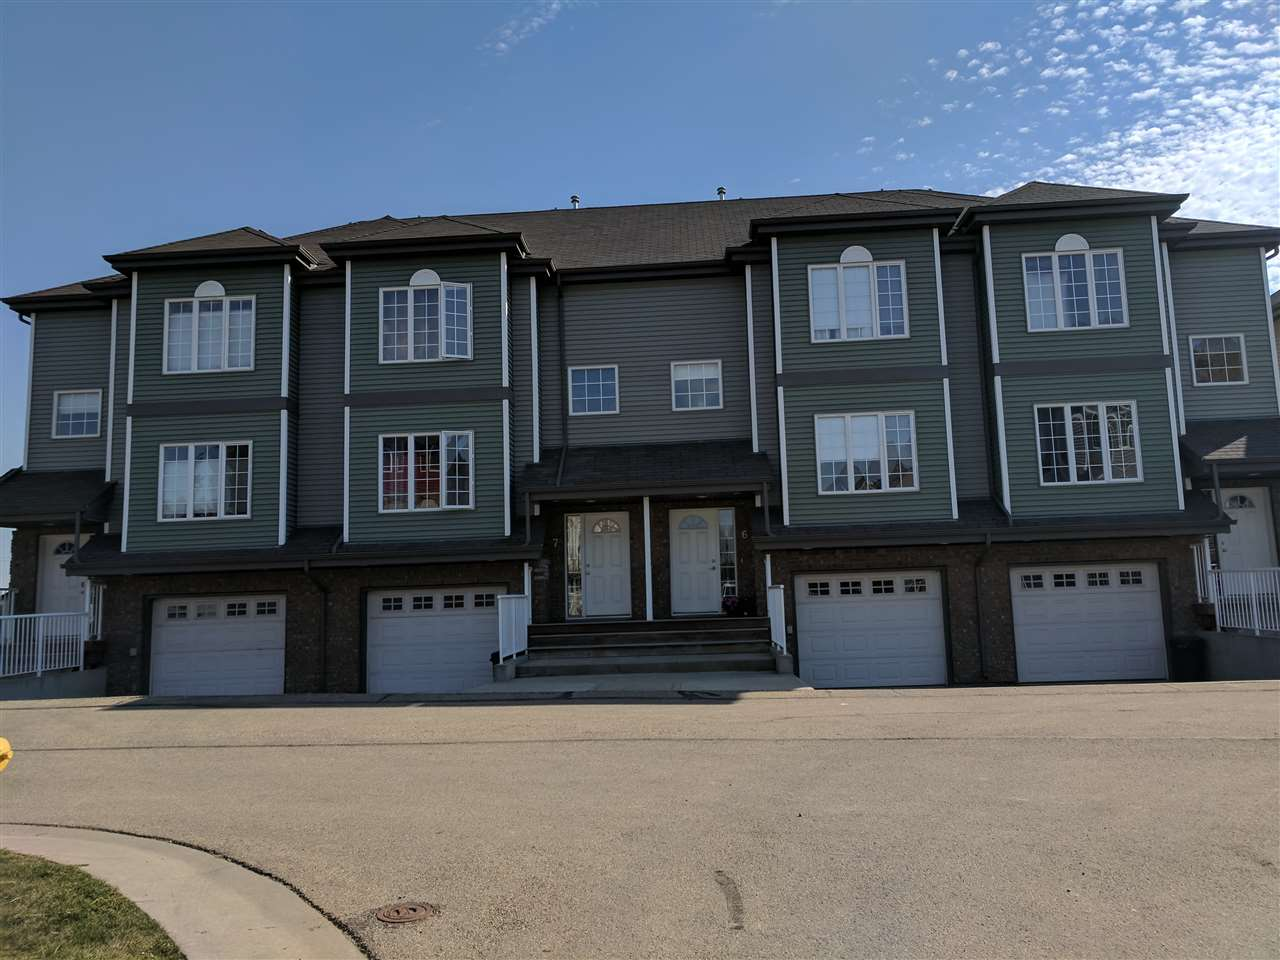 Family sized 3 bed condo w/ 3 bathrooms. Big ensuite, second floor laundry, eat in kitchen & dining room, lots of storage , low condo fees, tandem garage for 2 & storage area. Heated gar & pad. Lots of visitor parking, well managed.